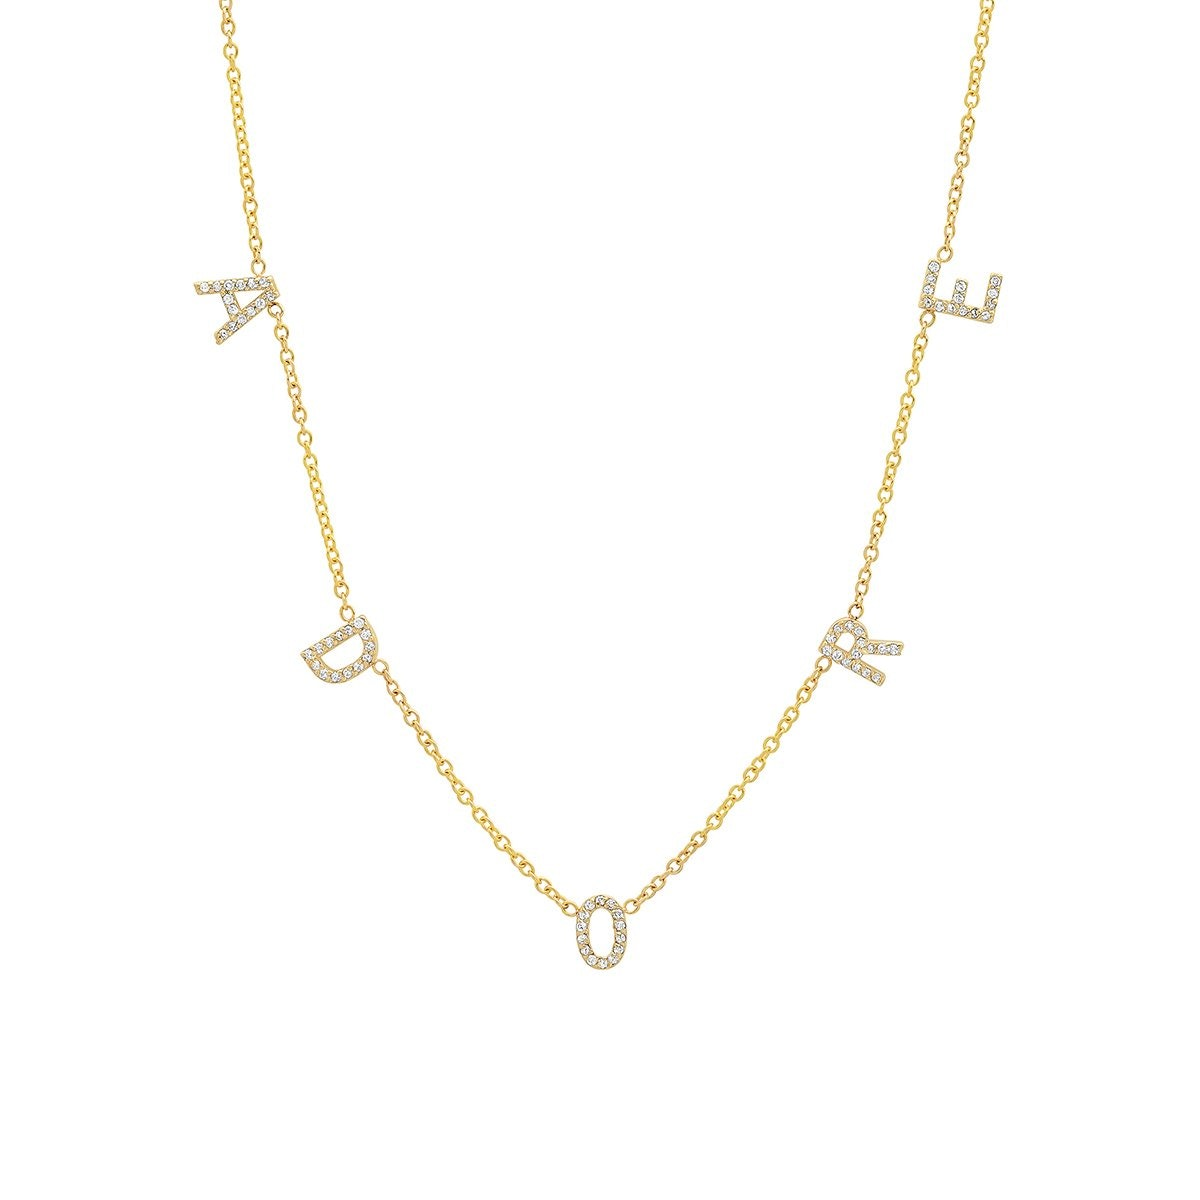 Original Diamond Spaced Letter Necklace from BYCHARI.